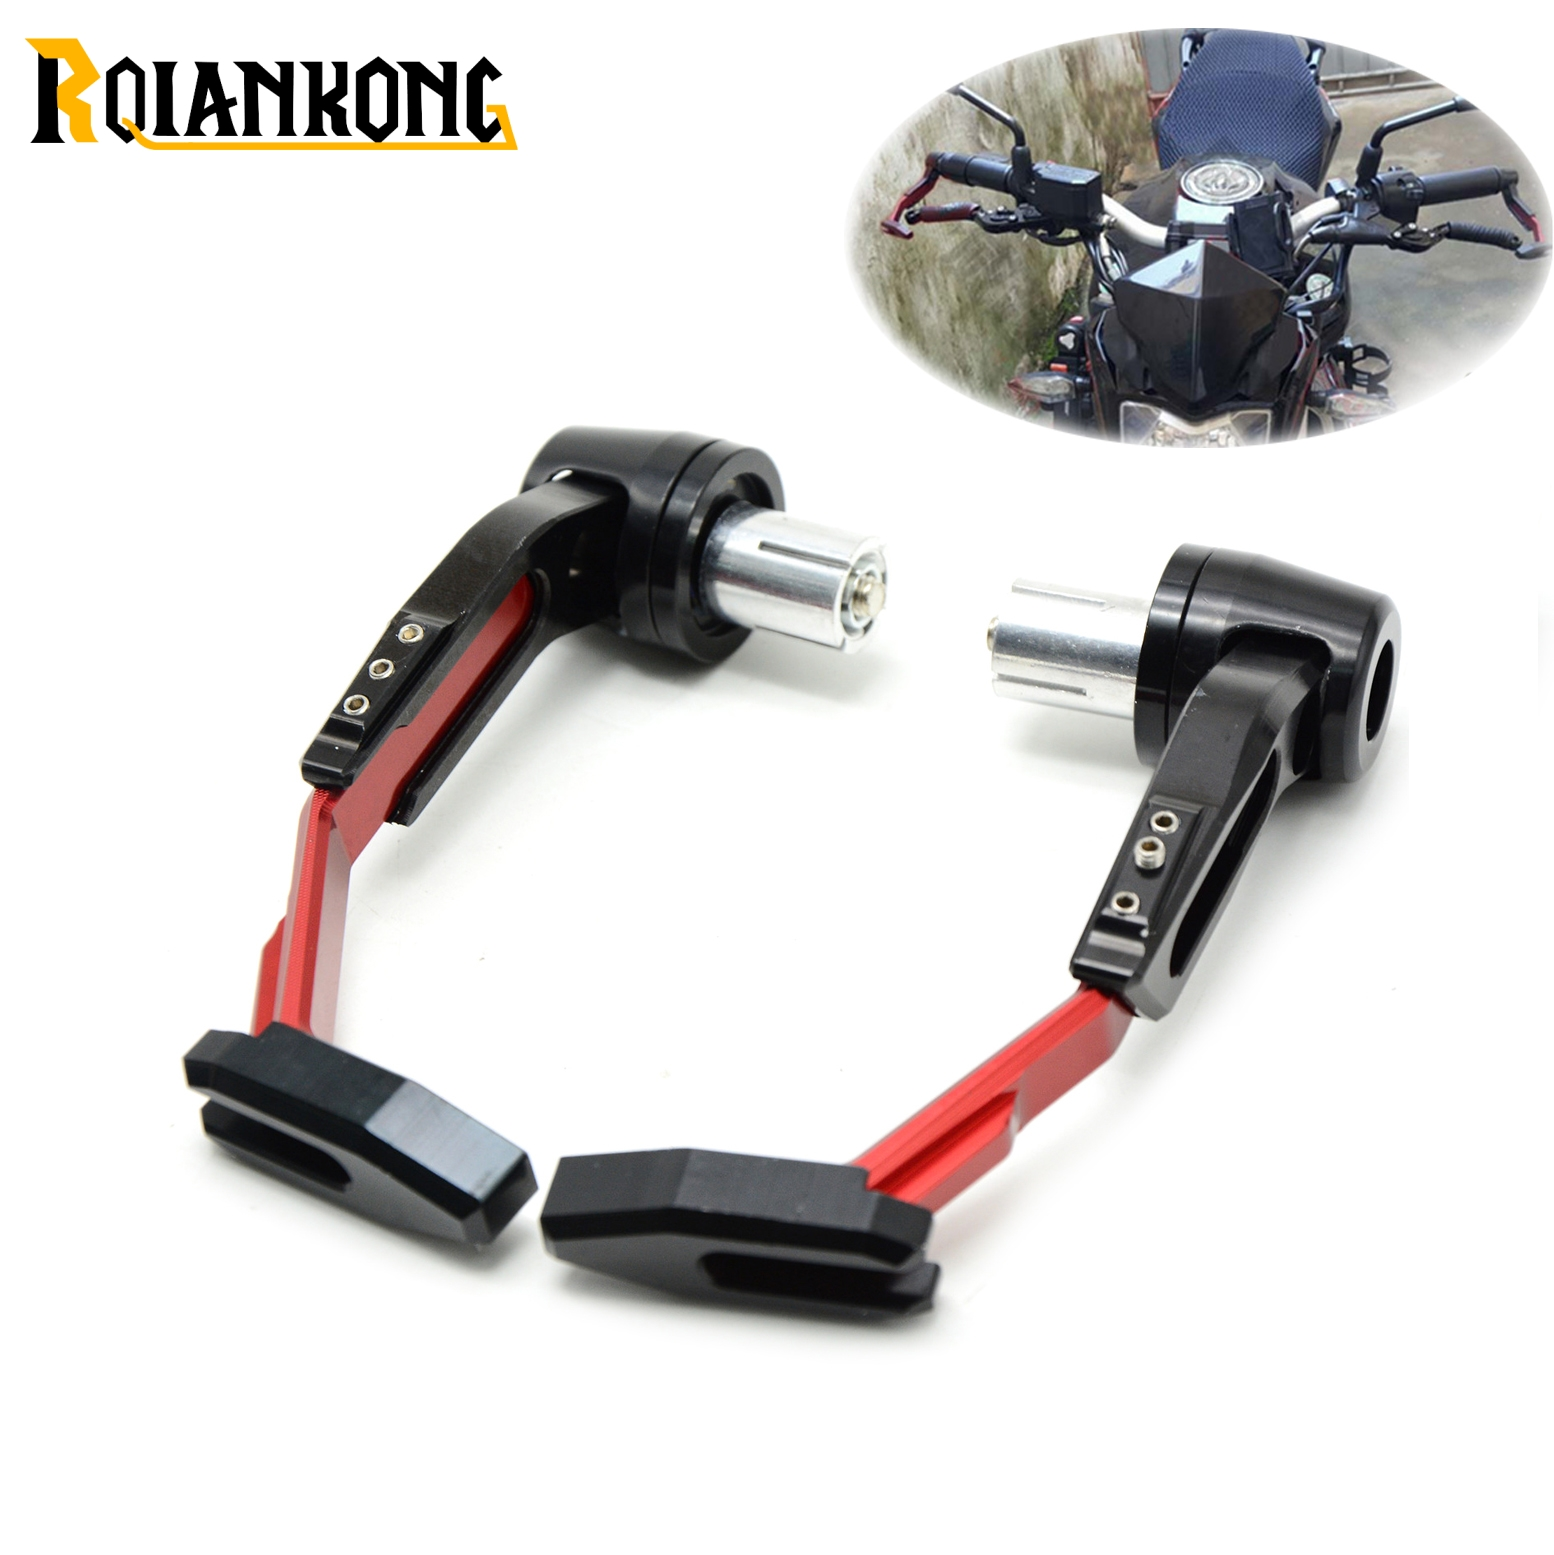 Universal 7/822mm Motorcycle Handlebar Clutch Brake Lever Protect Guard for Aprilia RSV MILLE RSV4 1000 R RR Factory APRC ABS 22mm 7 8 handlebar motorcycle performance stunt cnc clutch lever assembly ninja 1000 650r cb400 gsx1250f gsxr600 gsxr750 1000